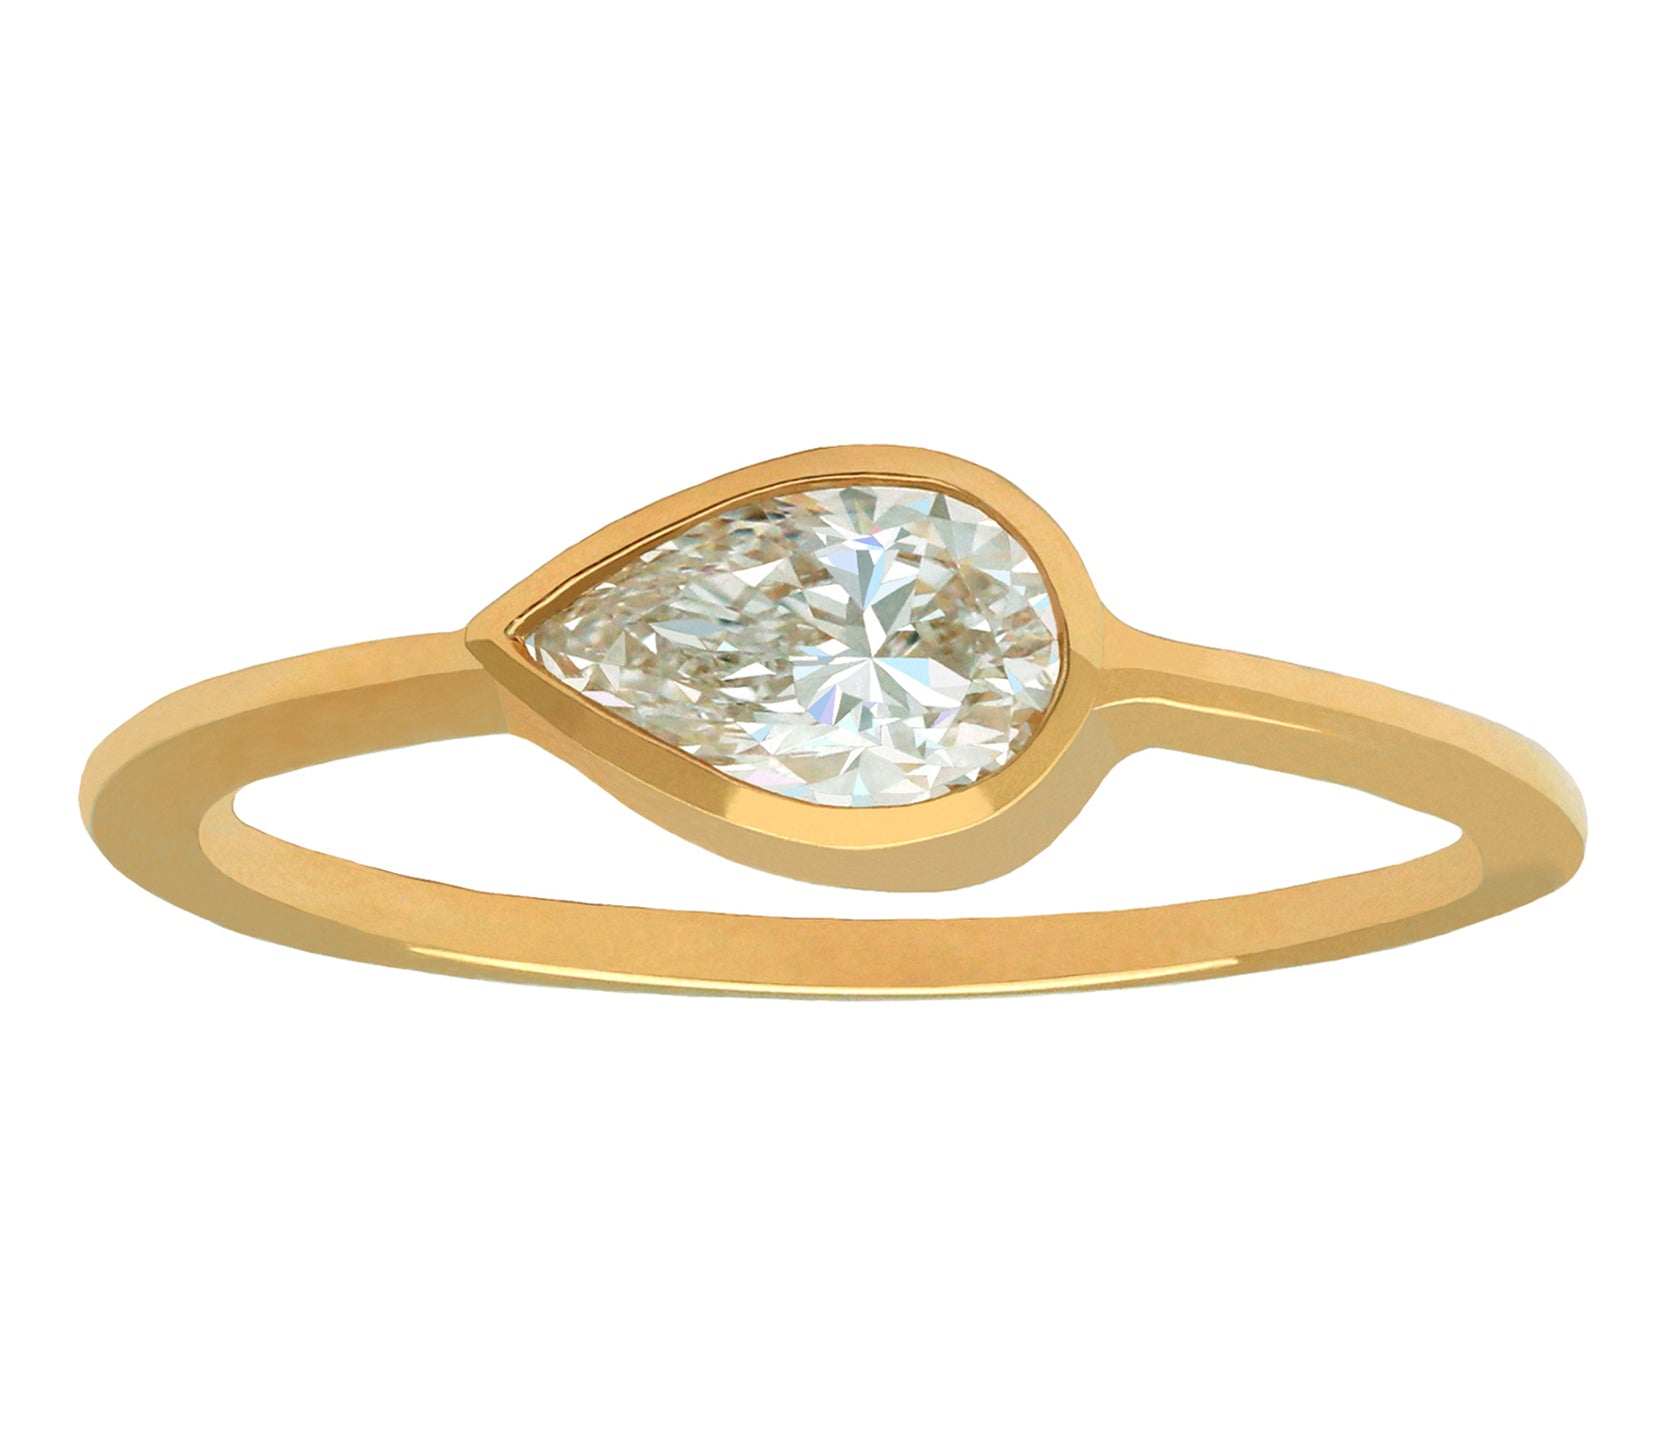 0.50ct Pear Brilliant Cut Diamond & Gold Bezel Ring